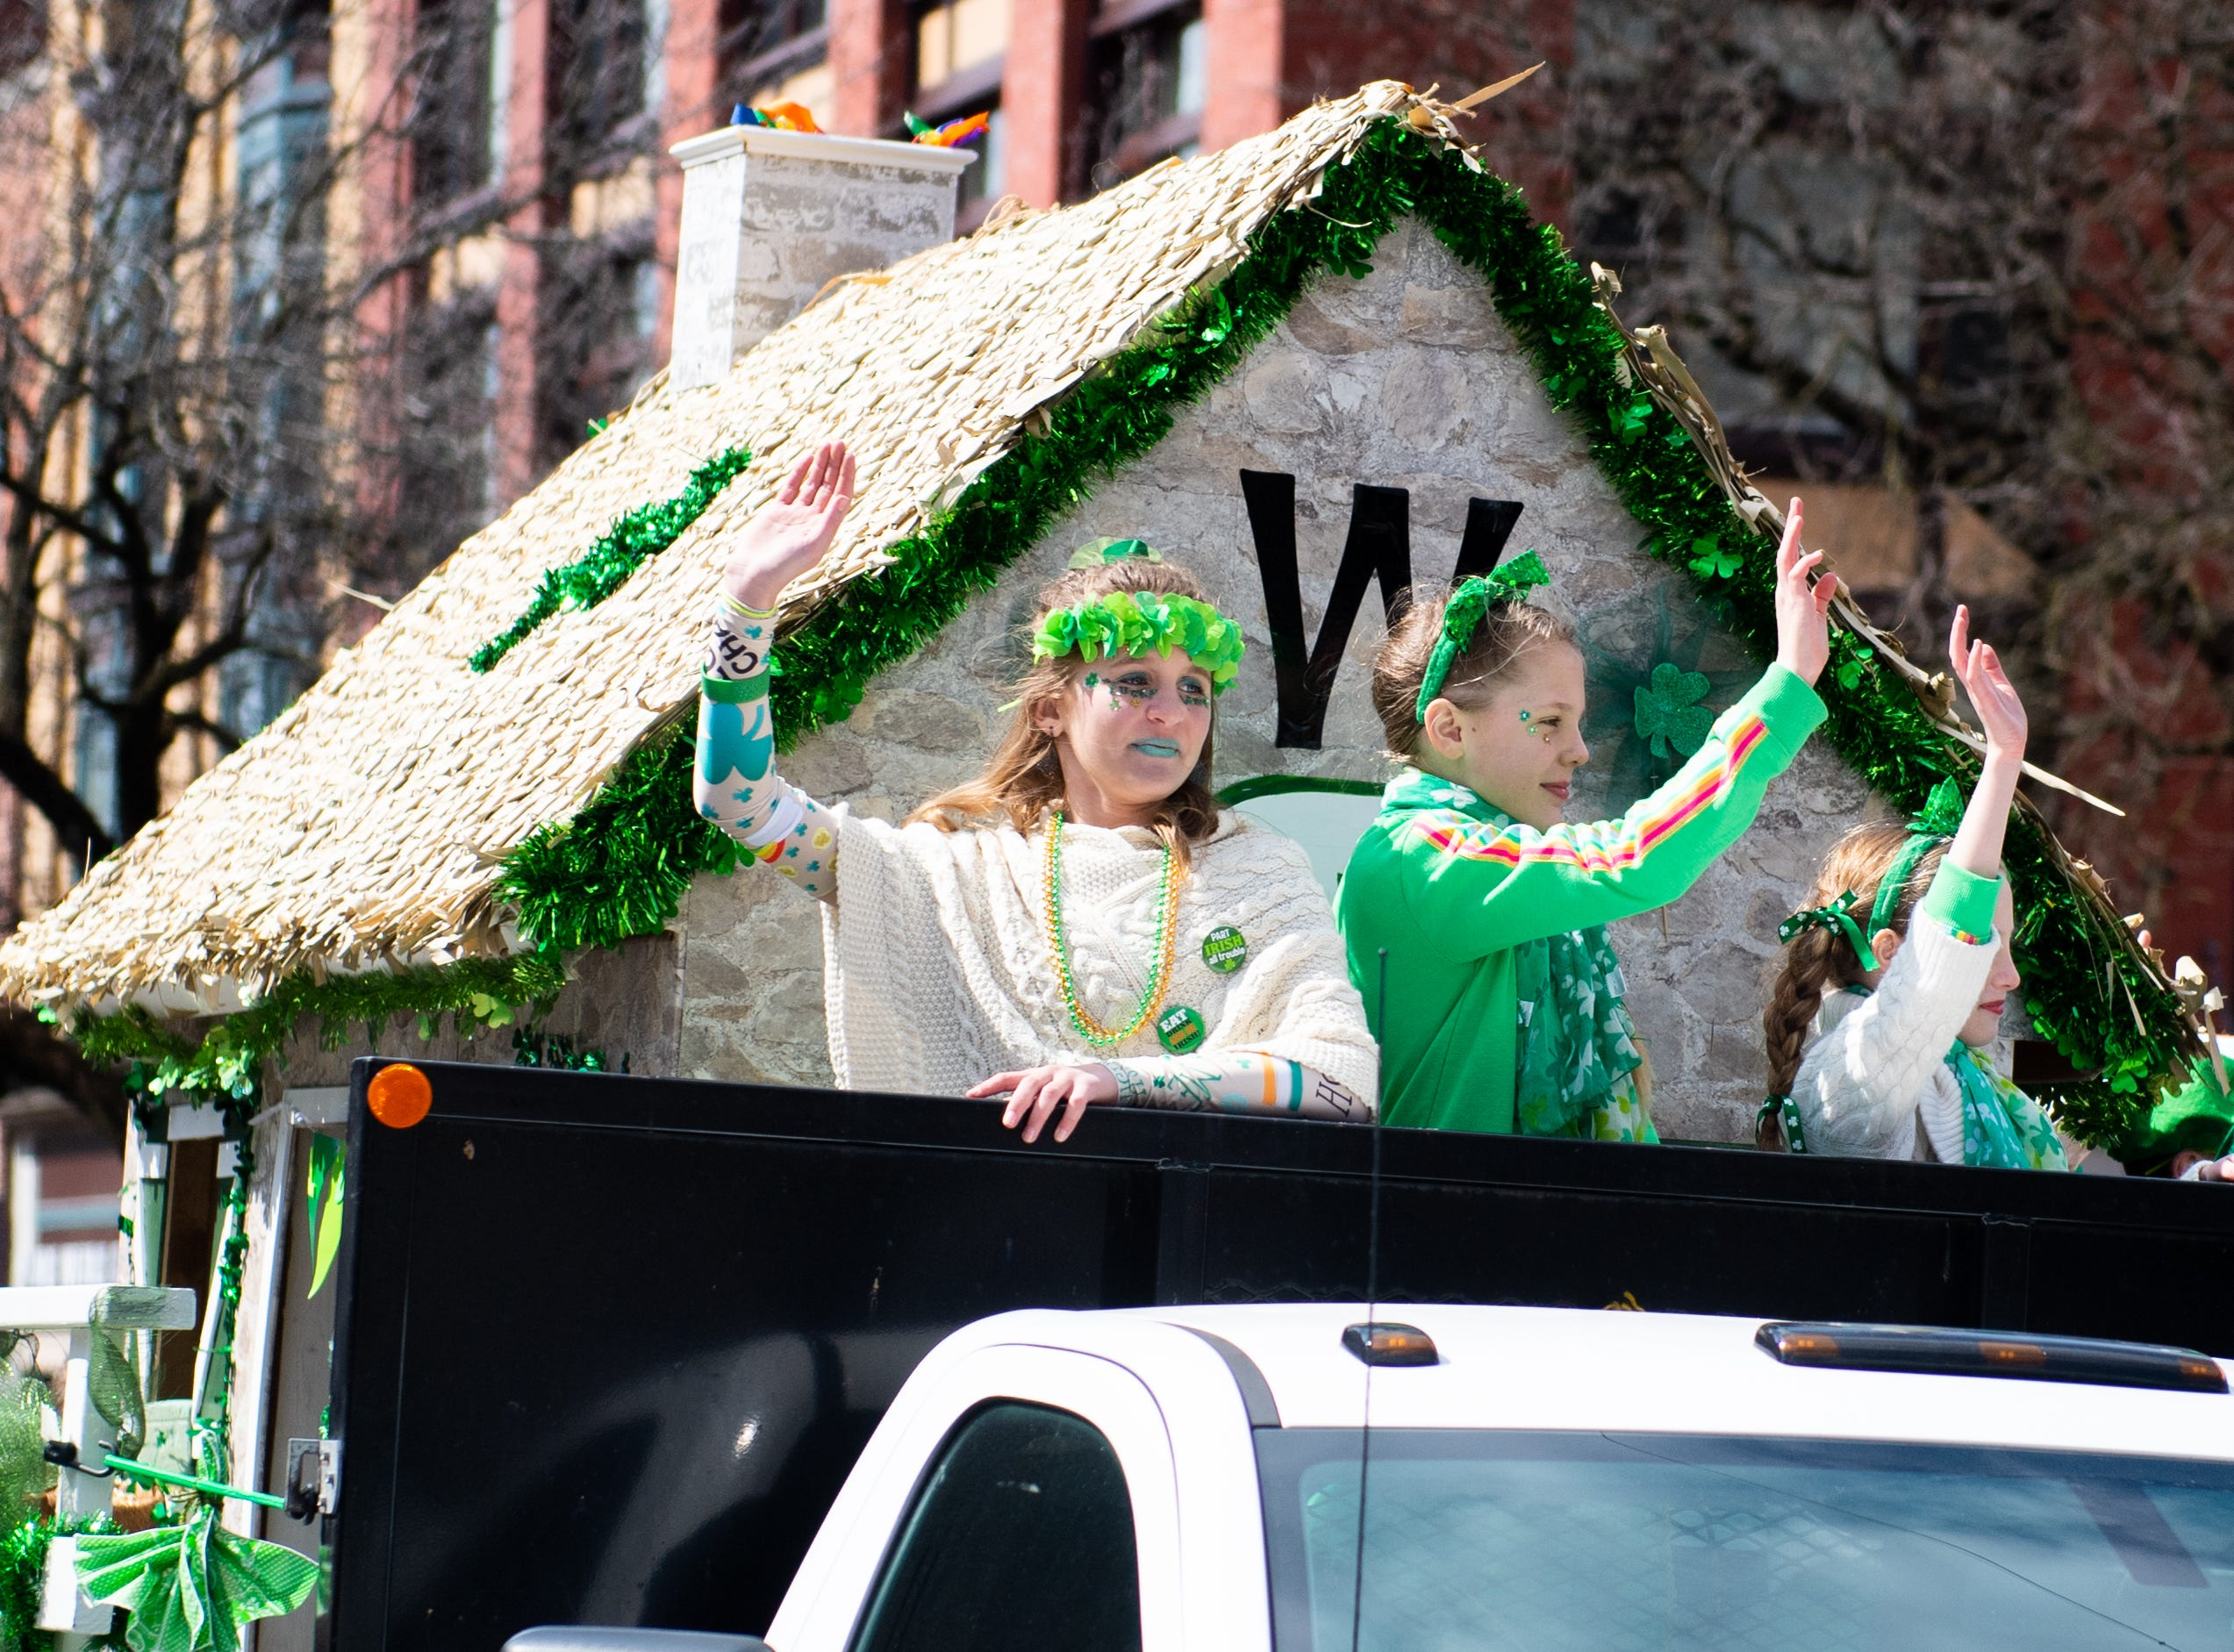 No float in the St. Patrick's Day Parade was the same. Each one had its own unique flair, March 16, 2019.